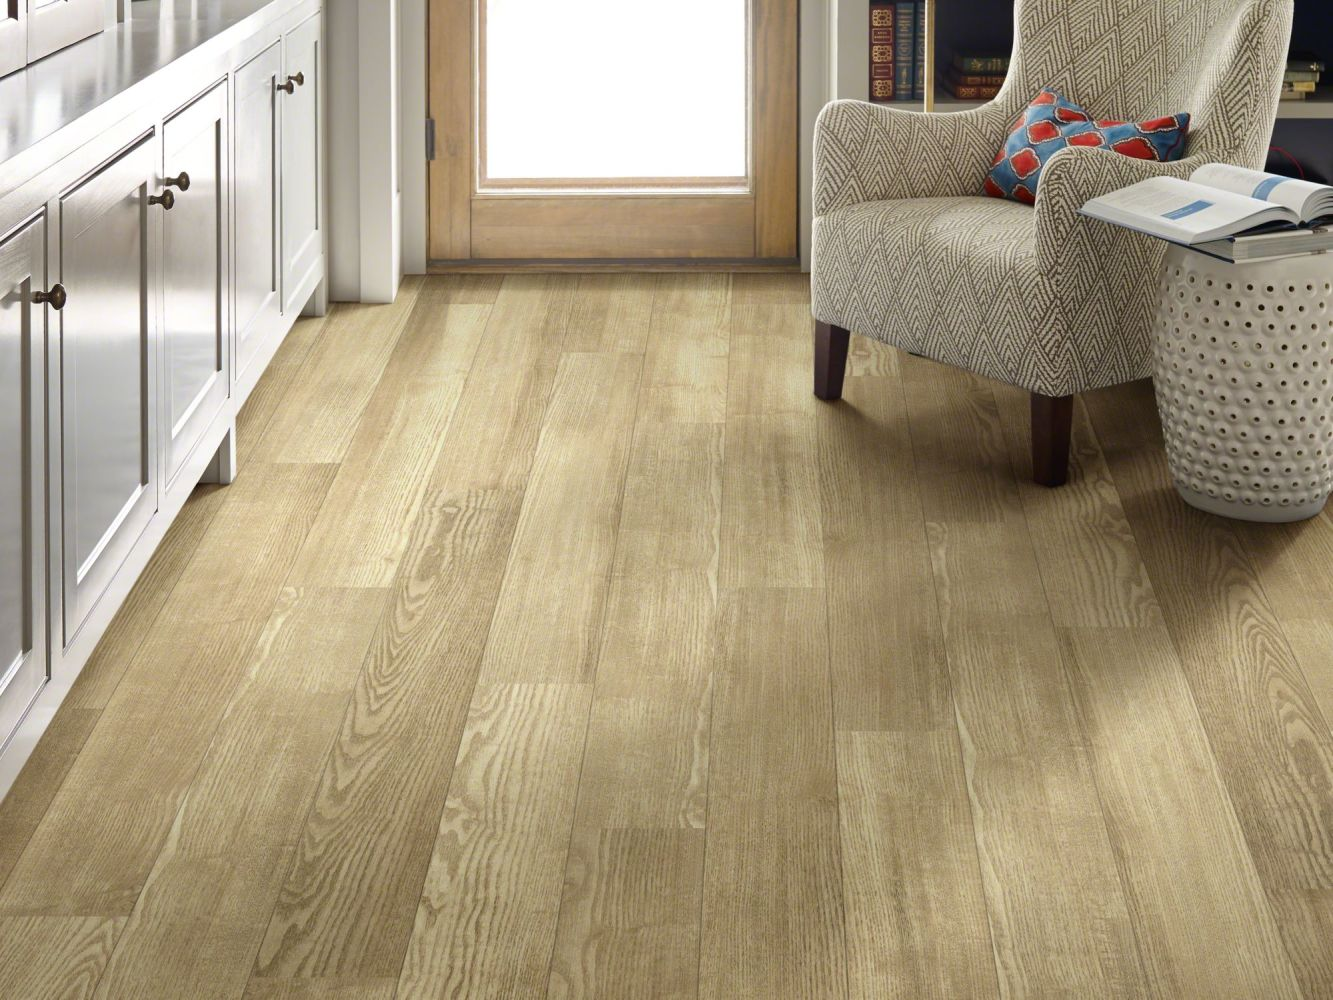 Shaw Floors Resilient Residential Three Rivers 30 Triple Ball 00173_0986V